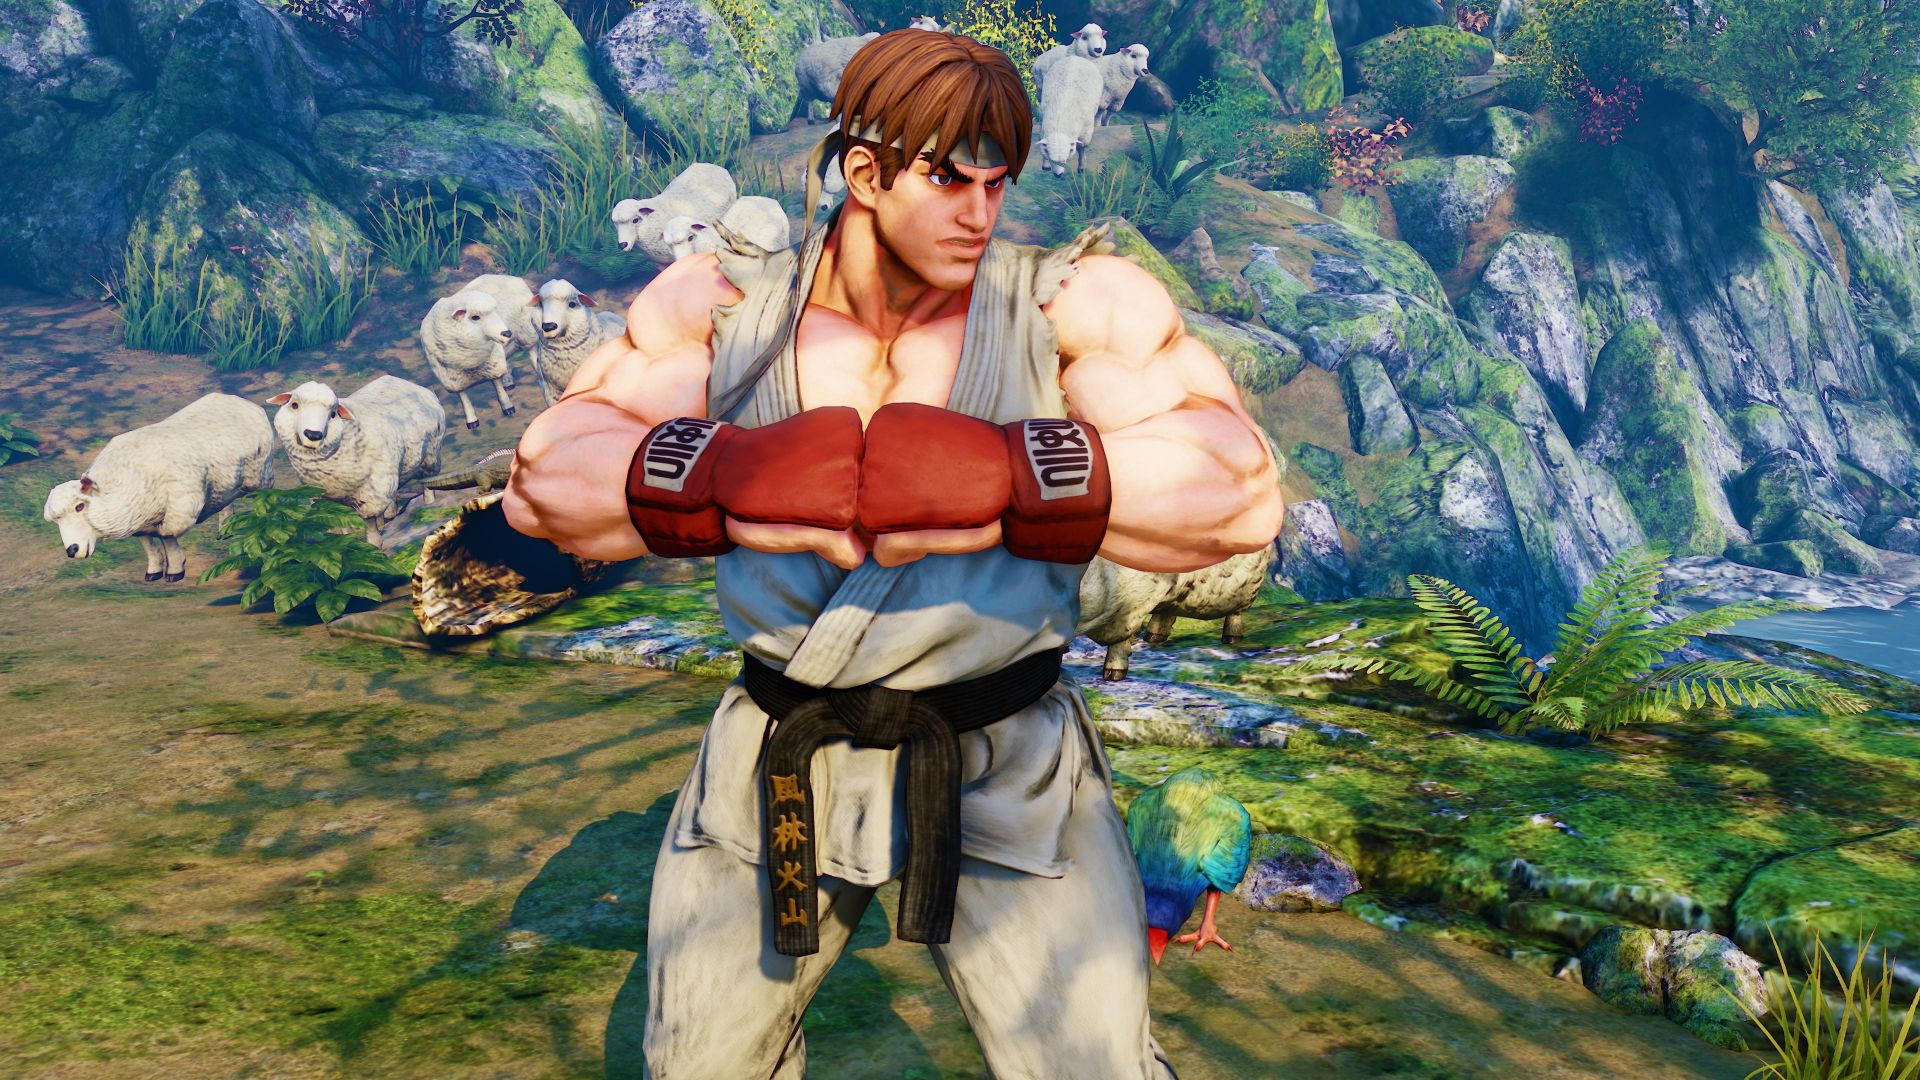 Street Fighter 5, Рей, Лучшие игры, фентези, ПК, PS4, Street Fighter 5, RYU, Best Games, fantasy, PC, PS4